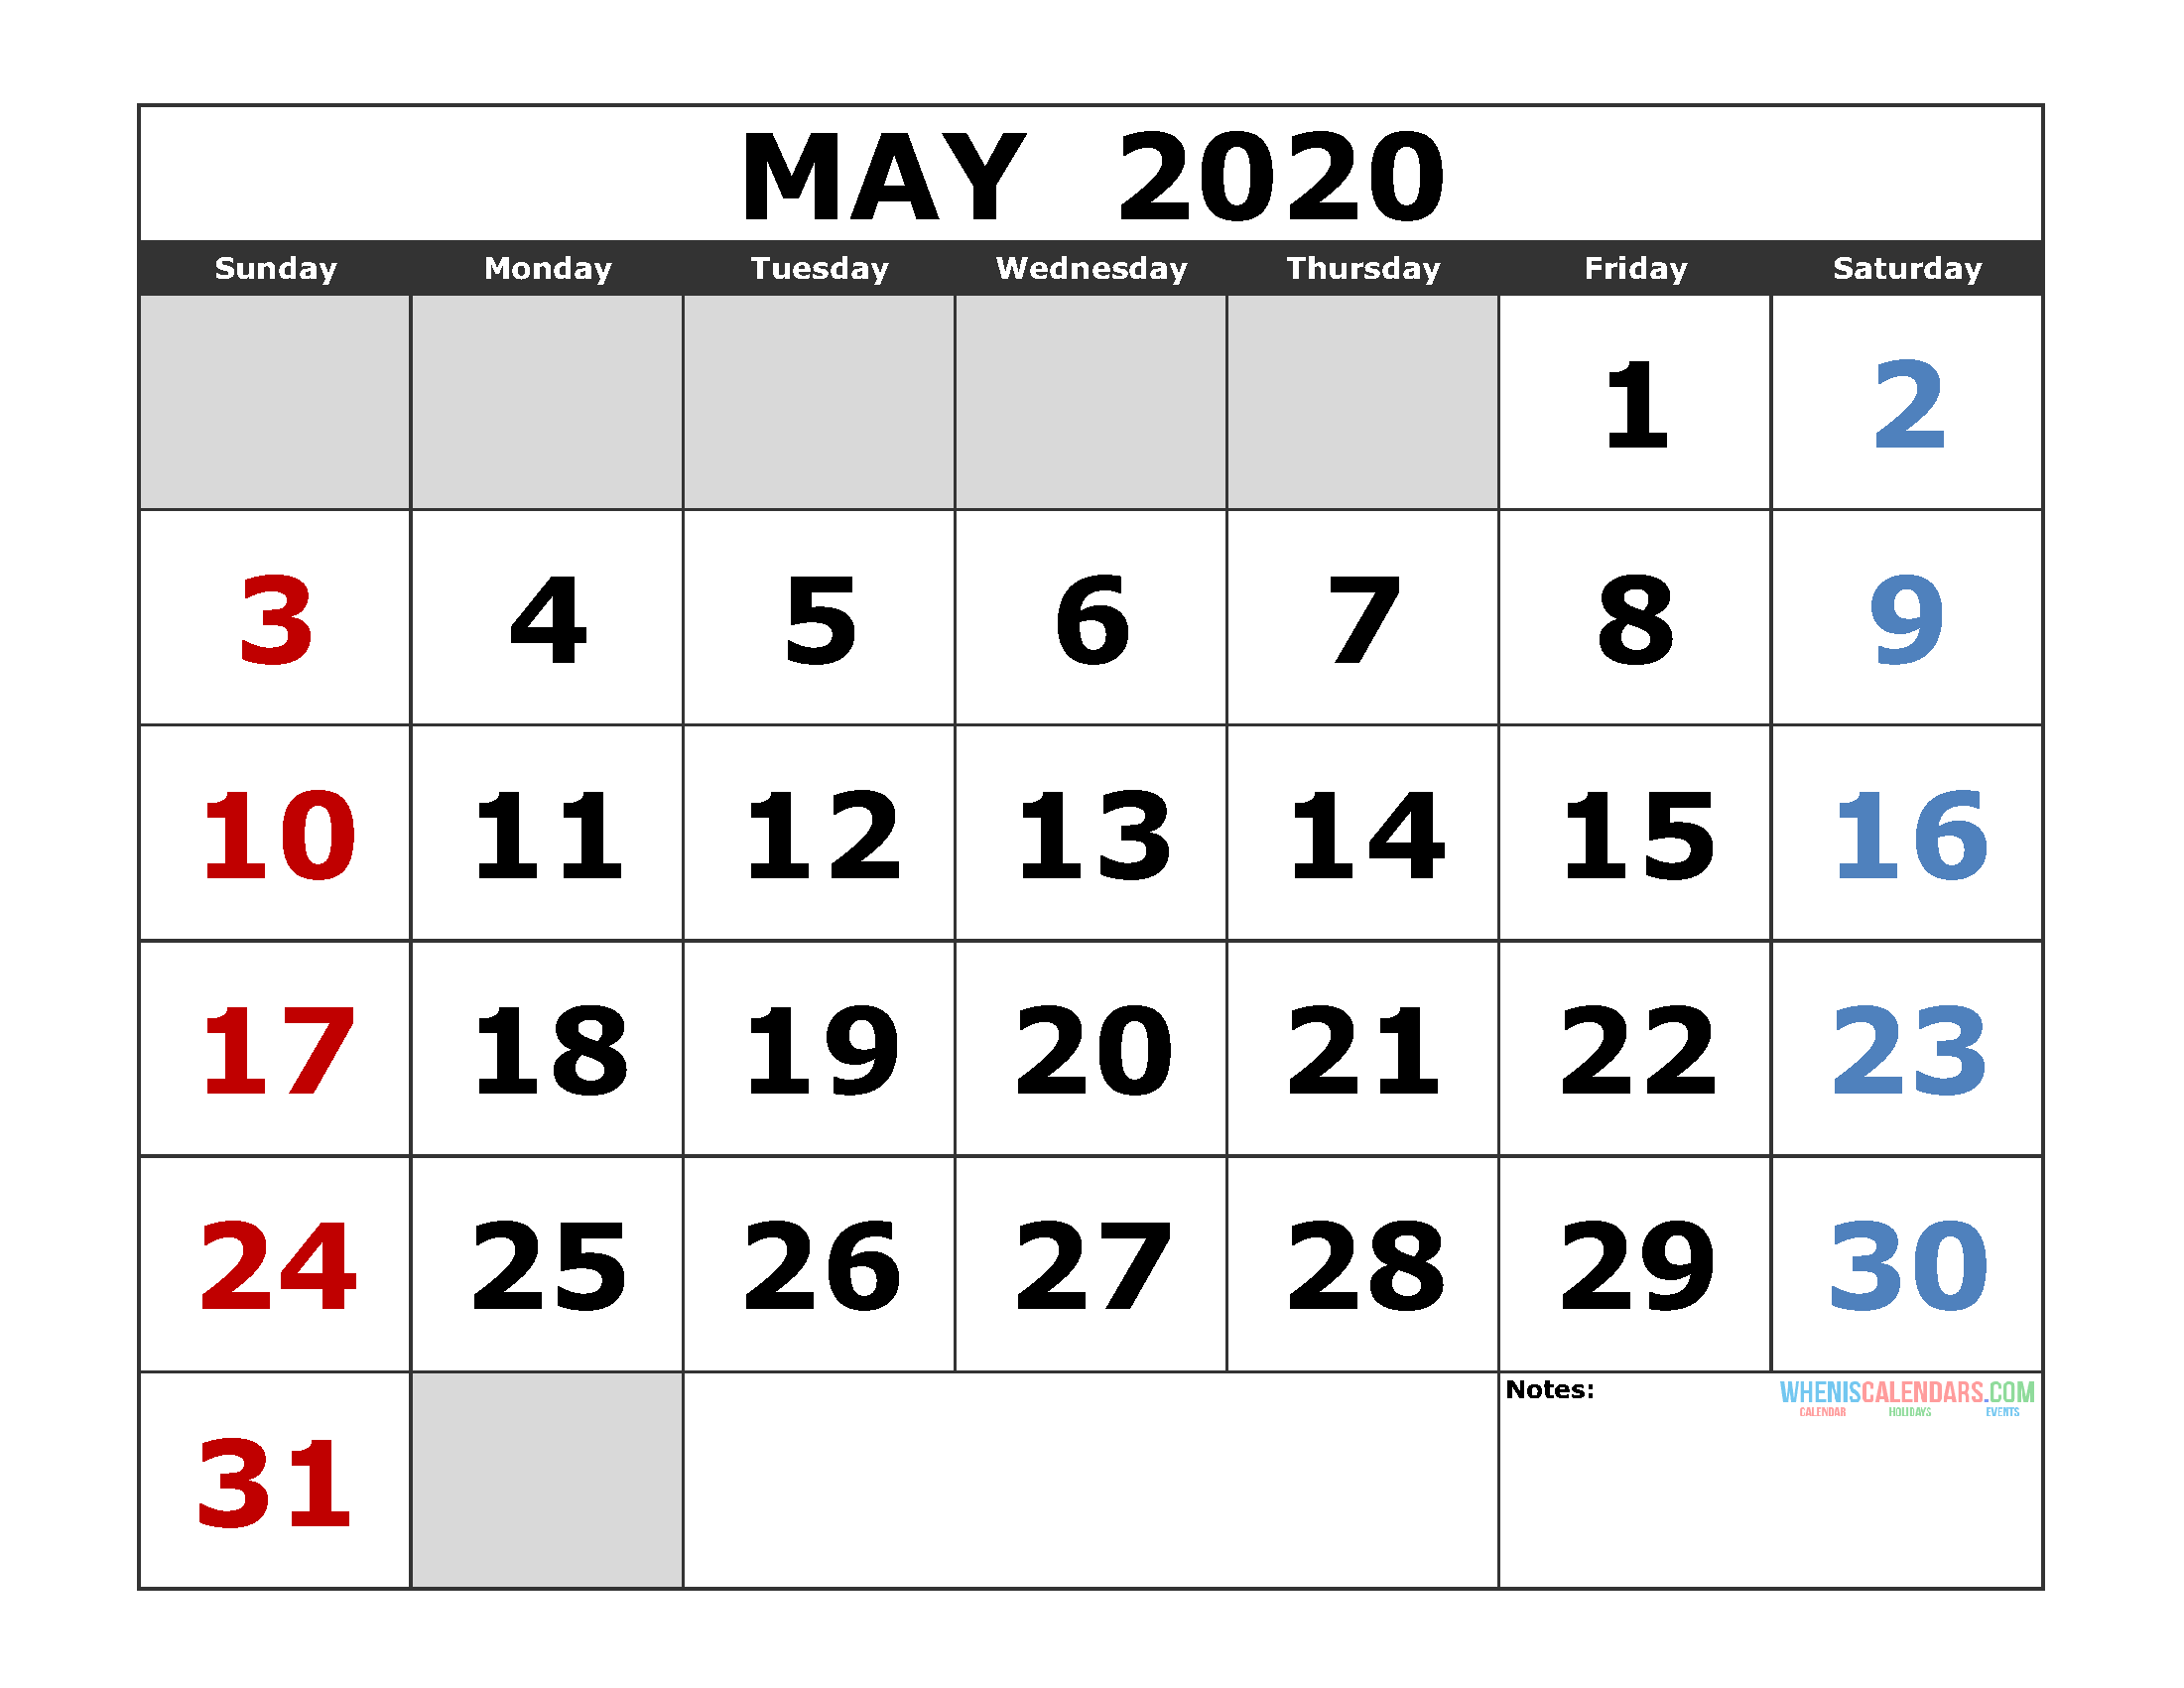 Calendar May 2020.May 2020 Printable Calendar Template Excel Pdf Image Us Edition